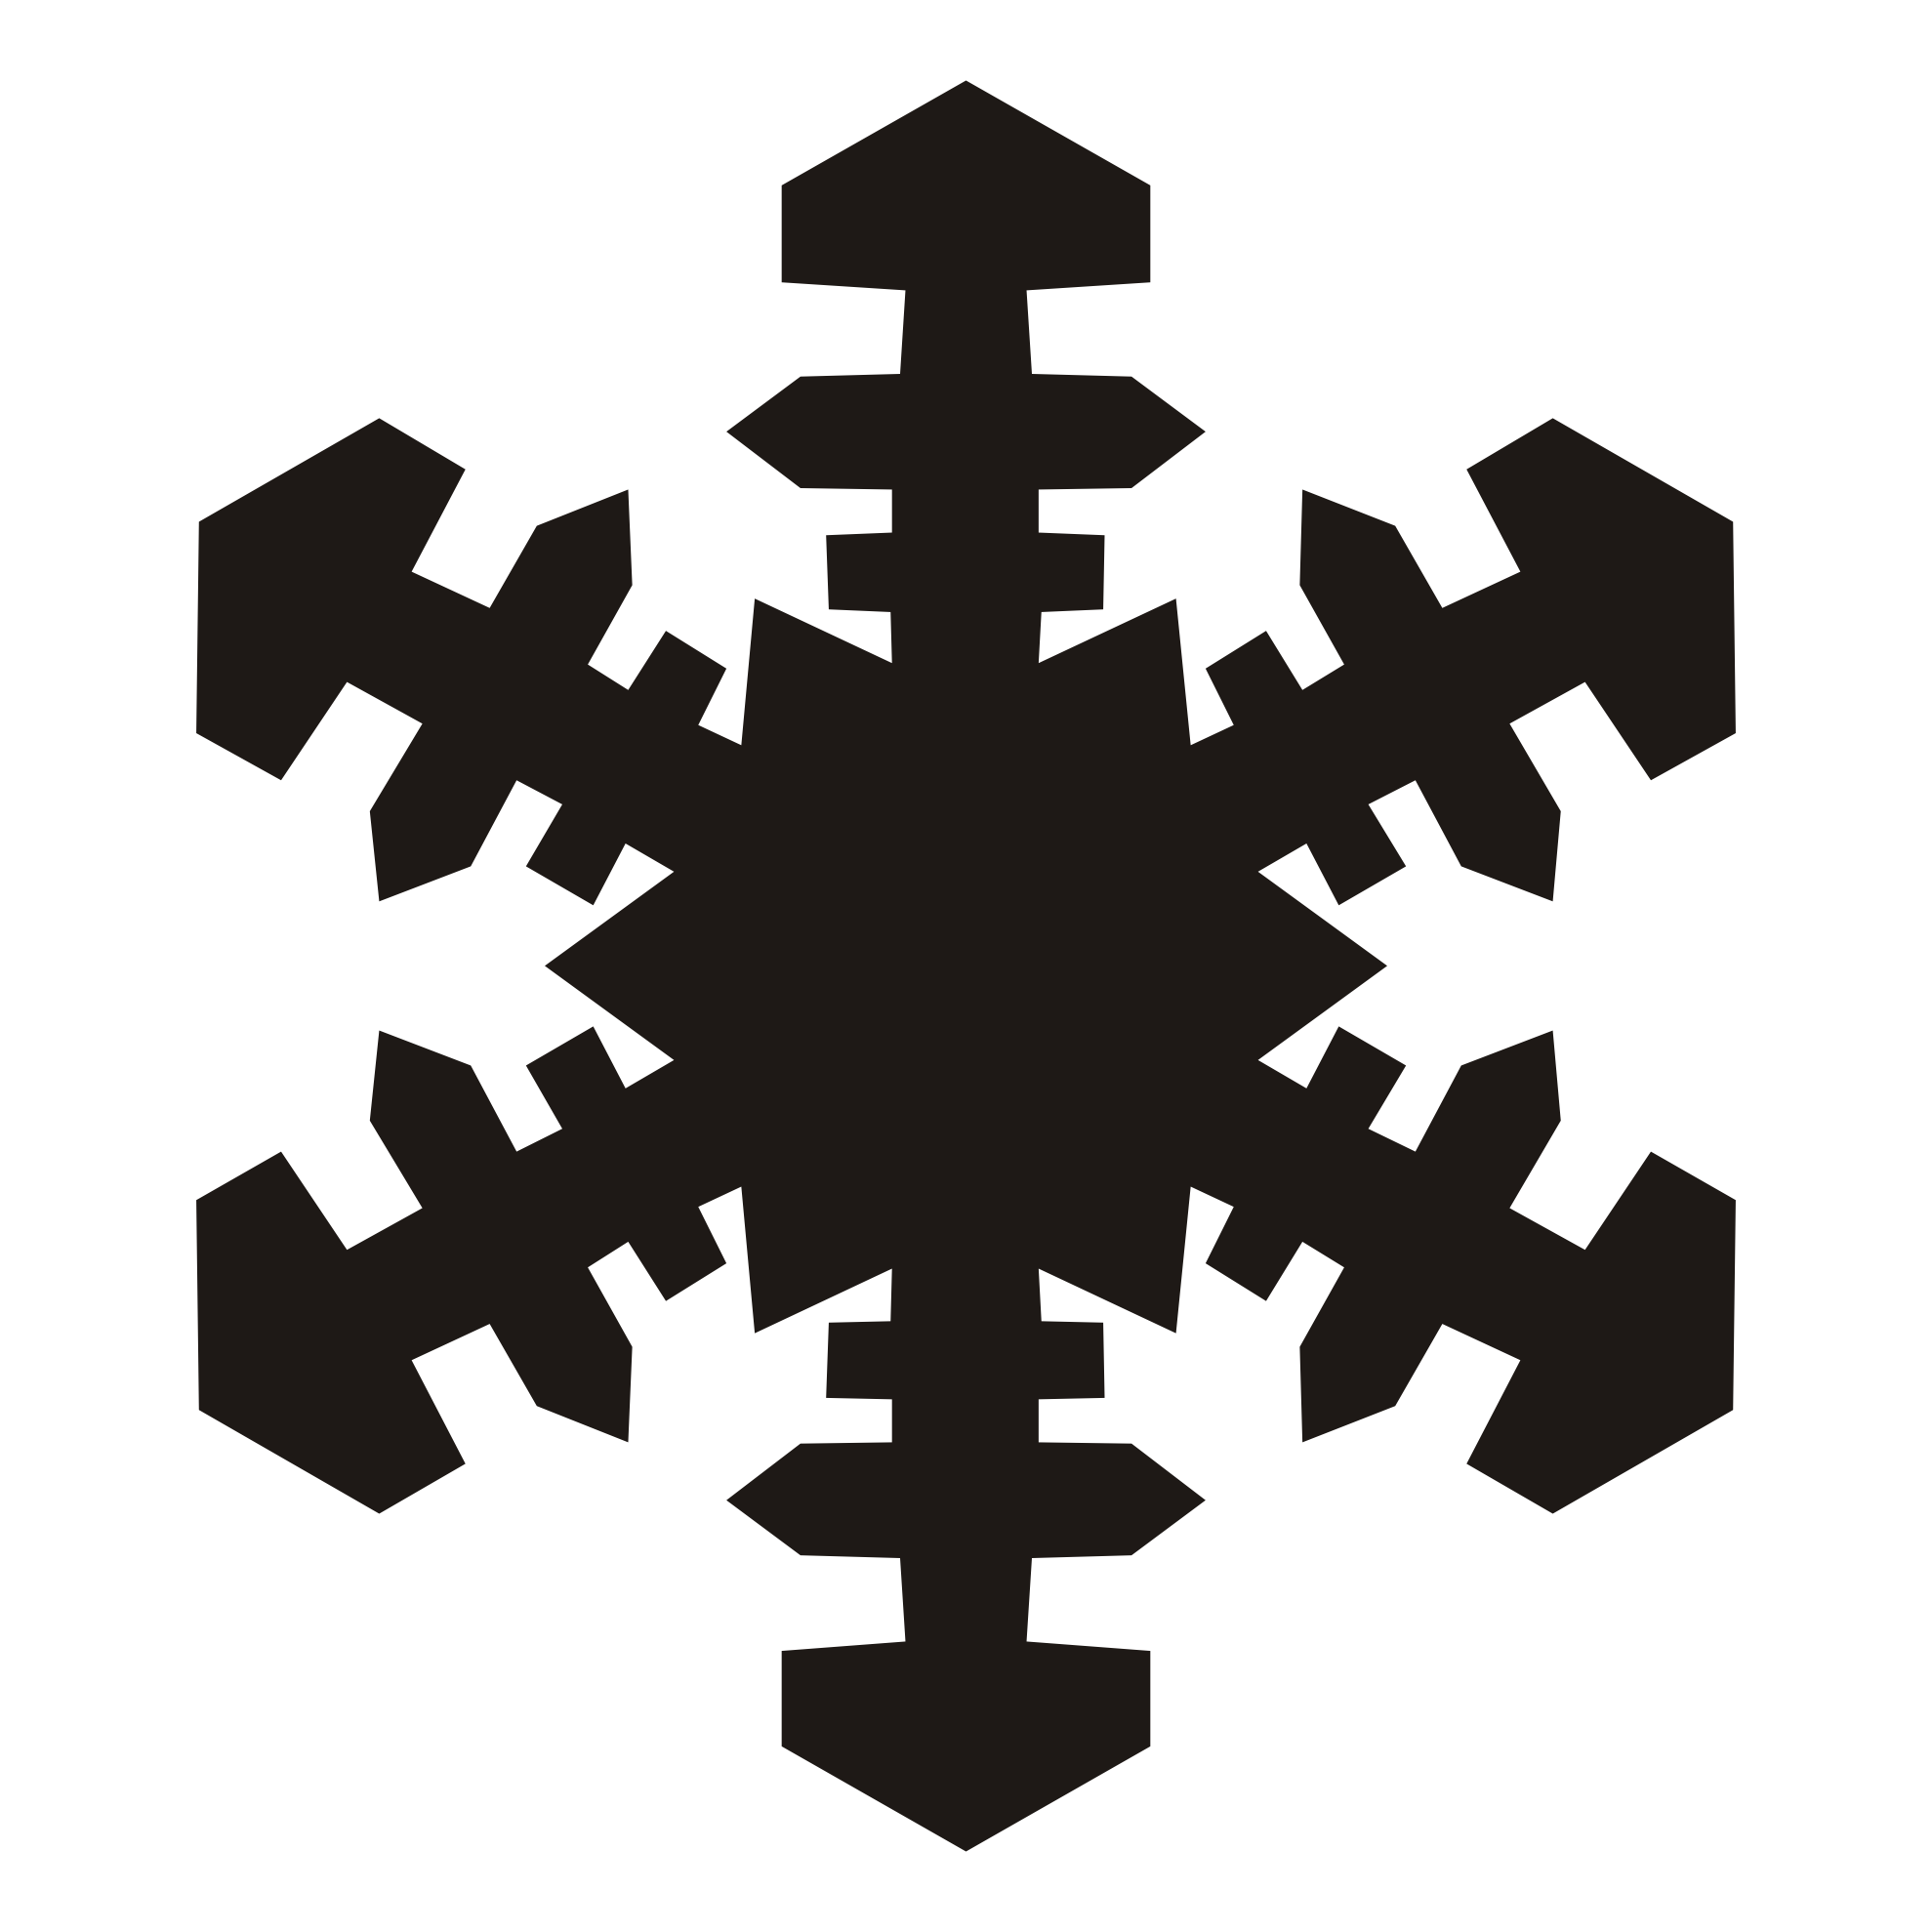 Snowflake clipart sketch freeuse download Christmas Silhouette Clipart at GetDrawings.com | Free for personal ... freeuse download